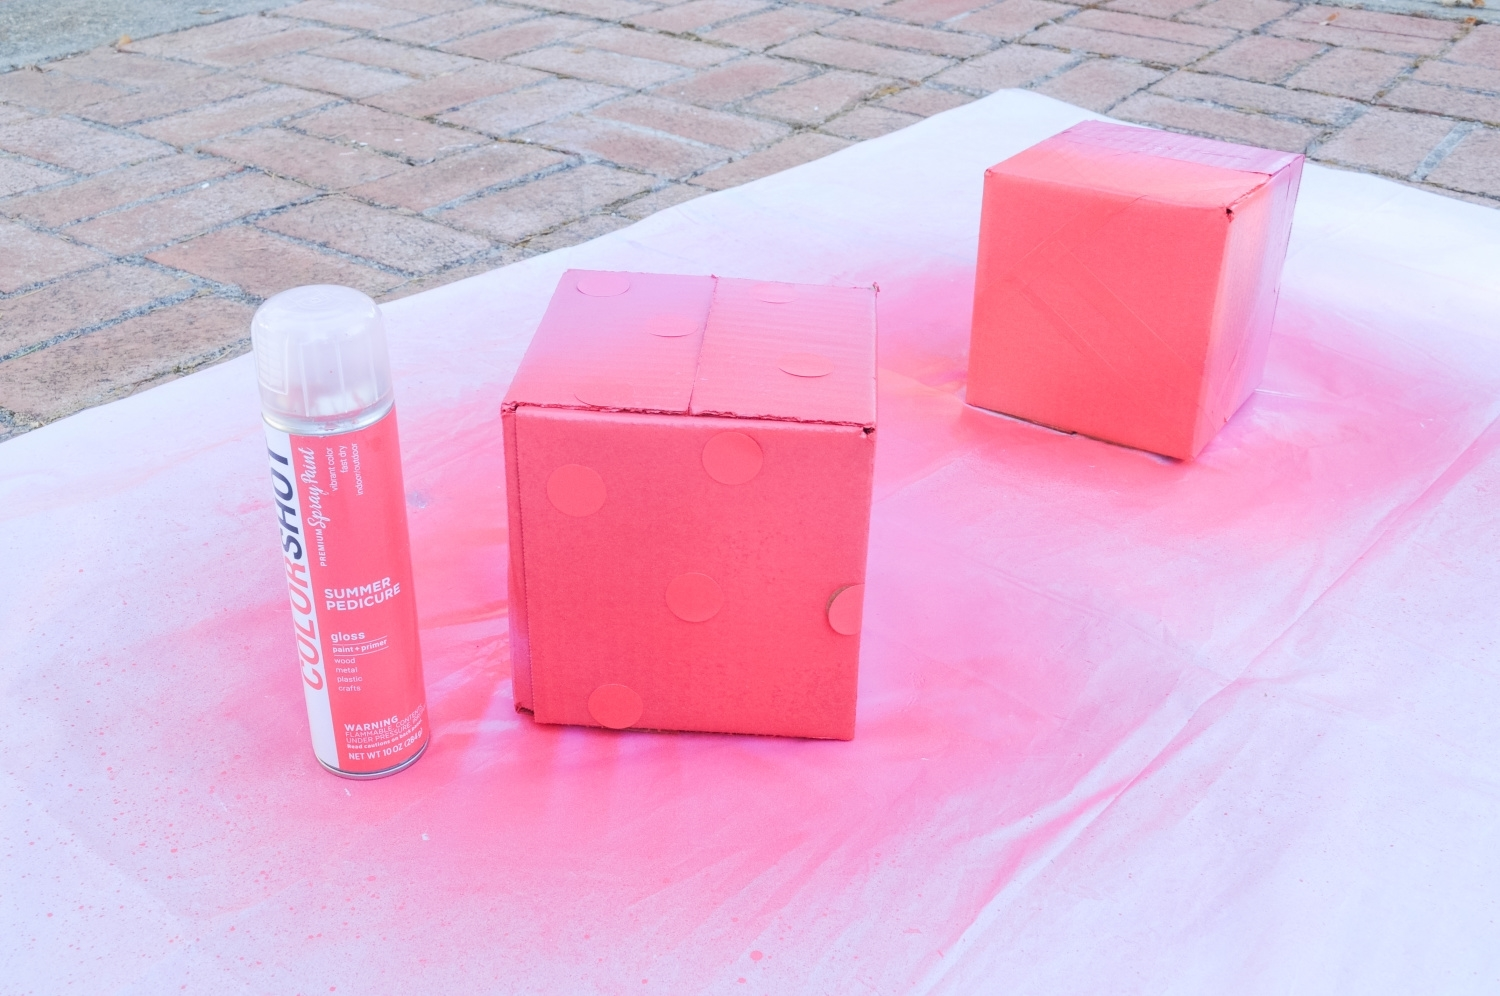 Spray paint shipping boxes